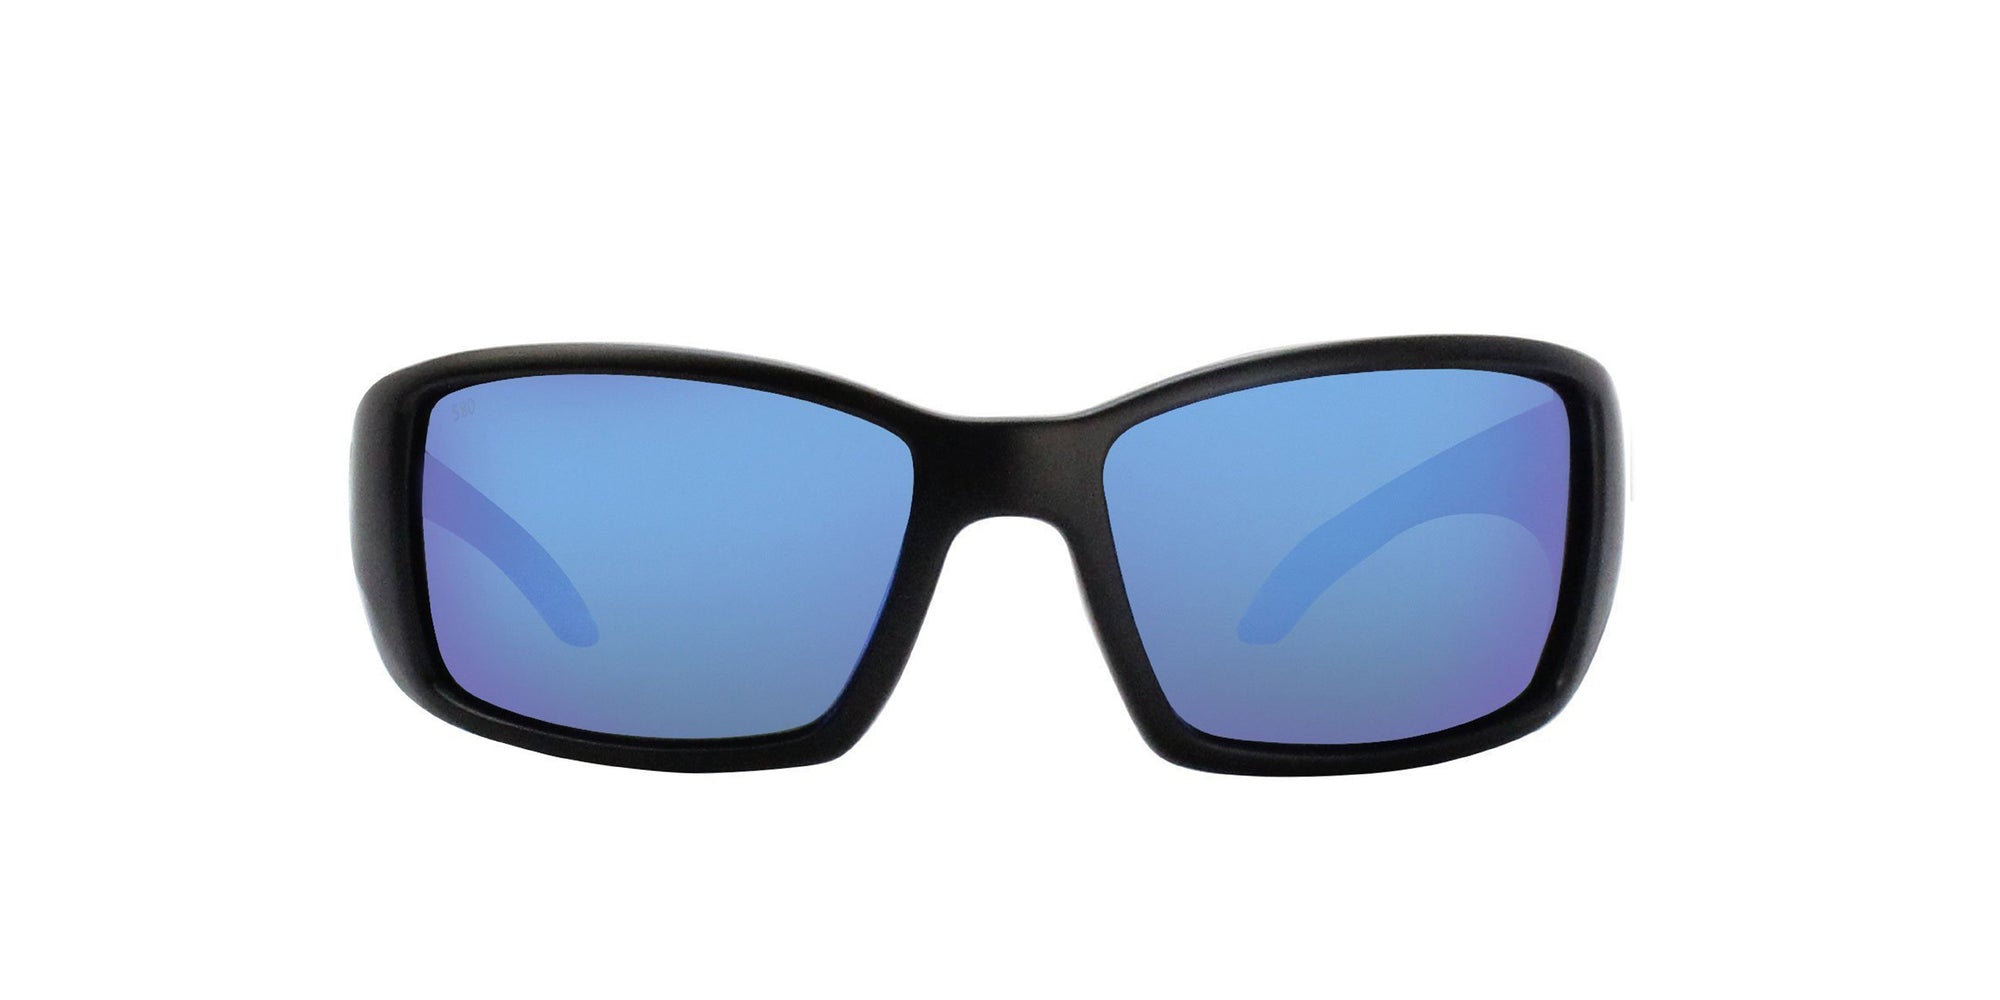 Costa Del Mar - Blackfin Black/Blue Mirror Polarized Wrap Men Sunglasses - 61mm-Sunglasses-Designer Eyes